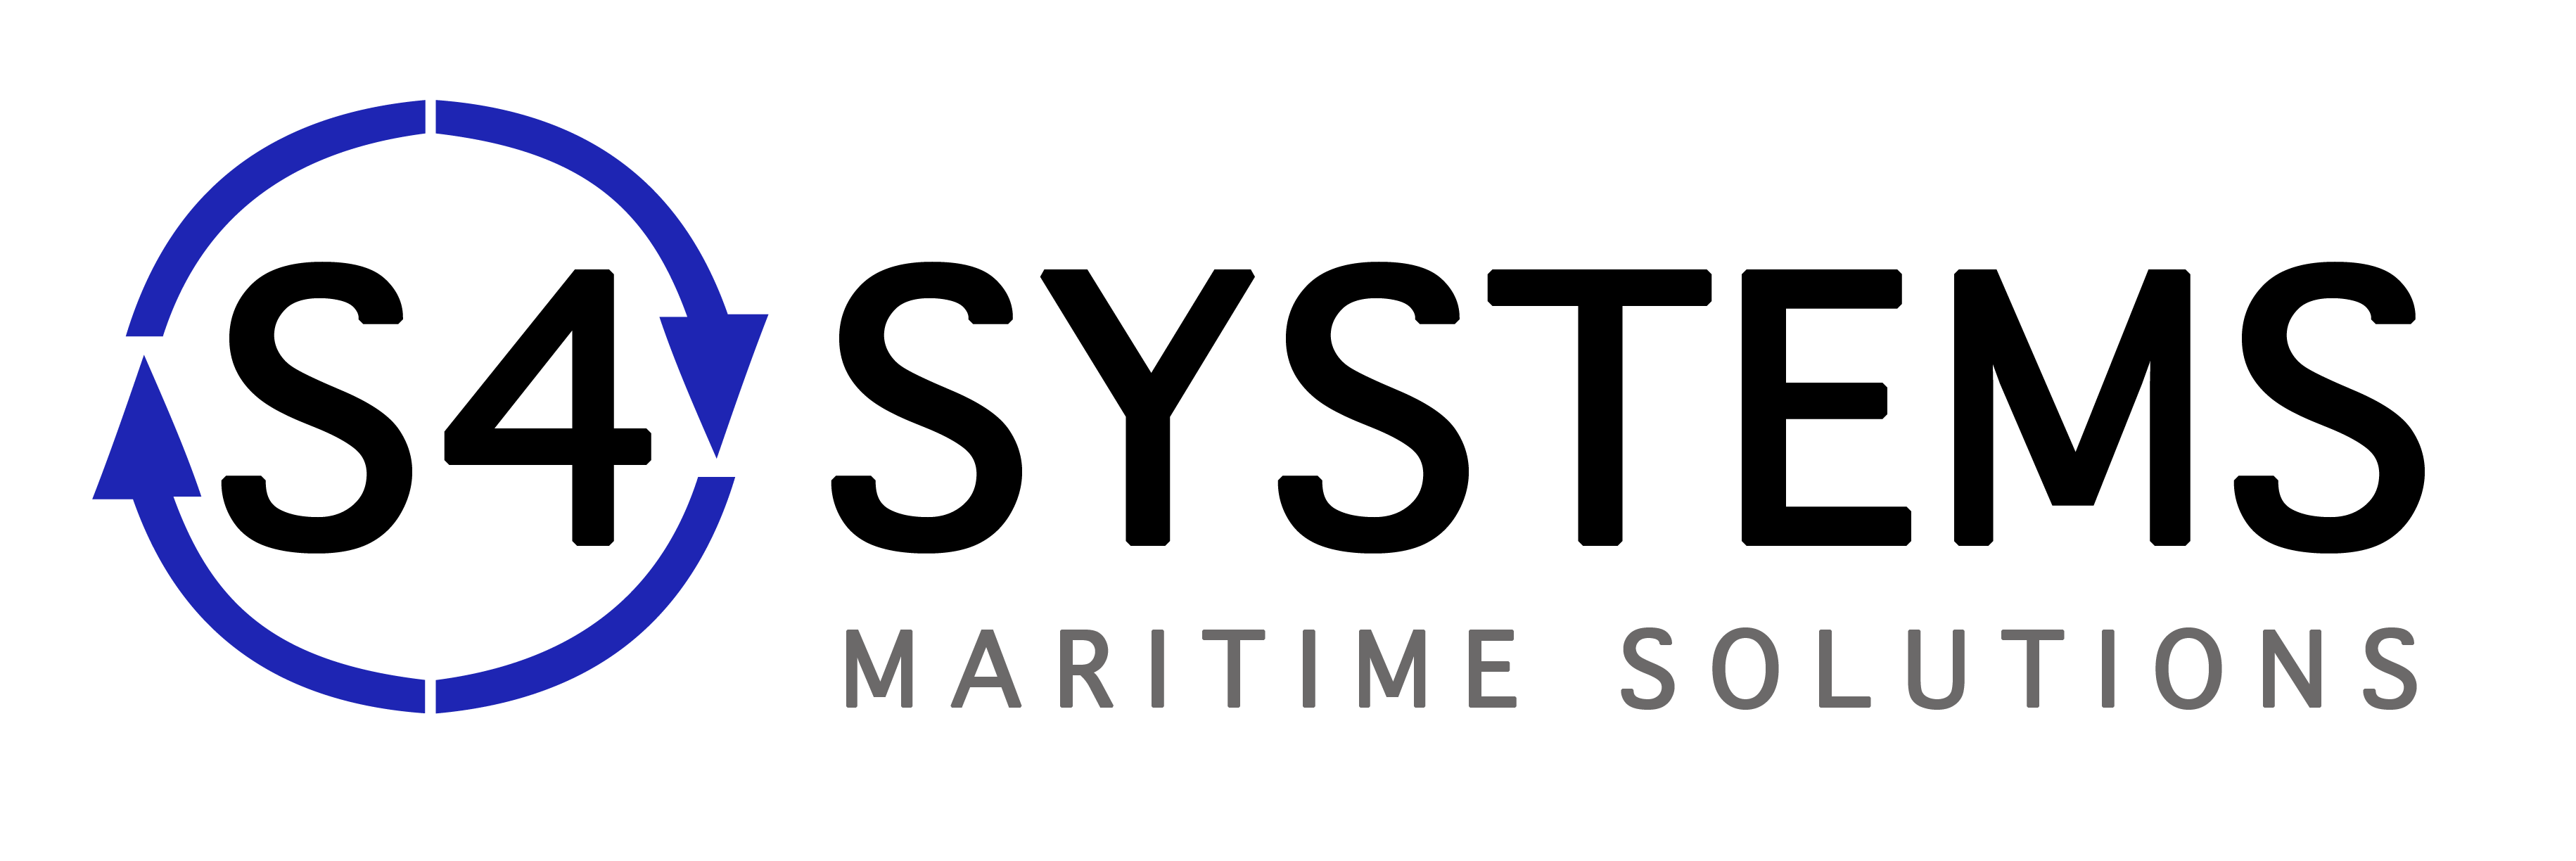 S4Systemslogo-2018.png